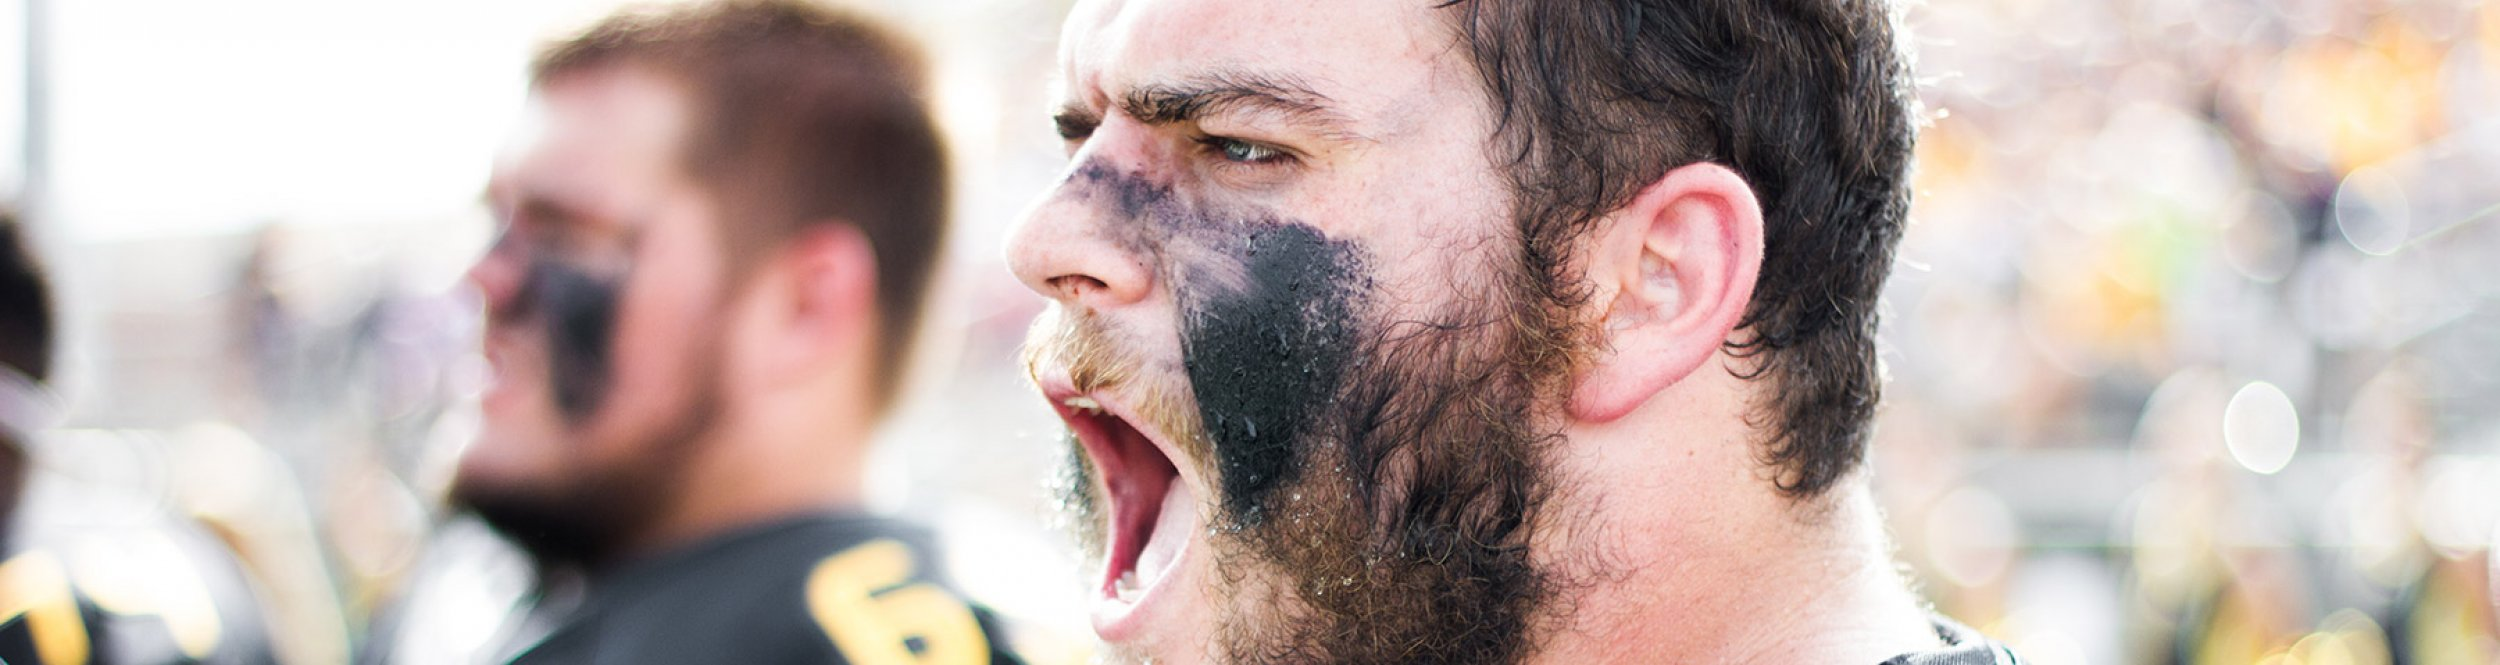 A football player with black paint on his face yells.